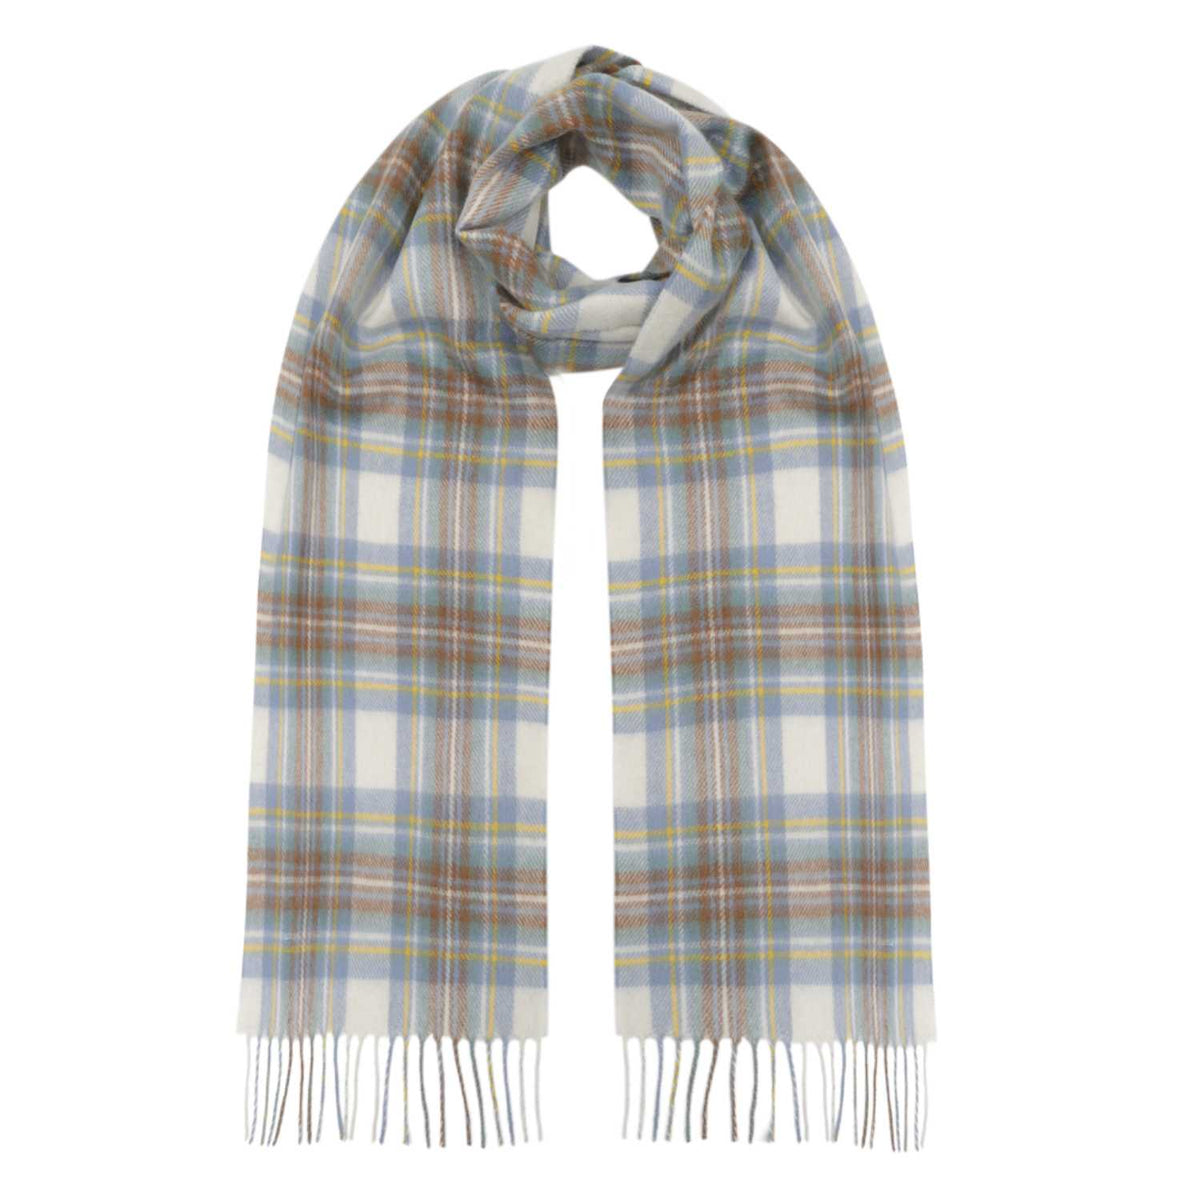 Lomond Cashmere | Muted Blue Dress Stewart | Sottish Tartan Cashmere Scarf | Shop at The Cashmere Choice | London